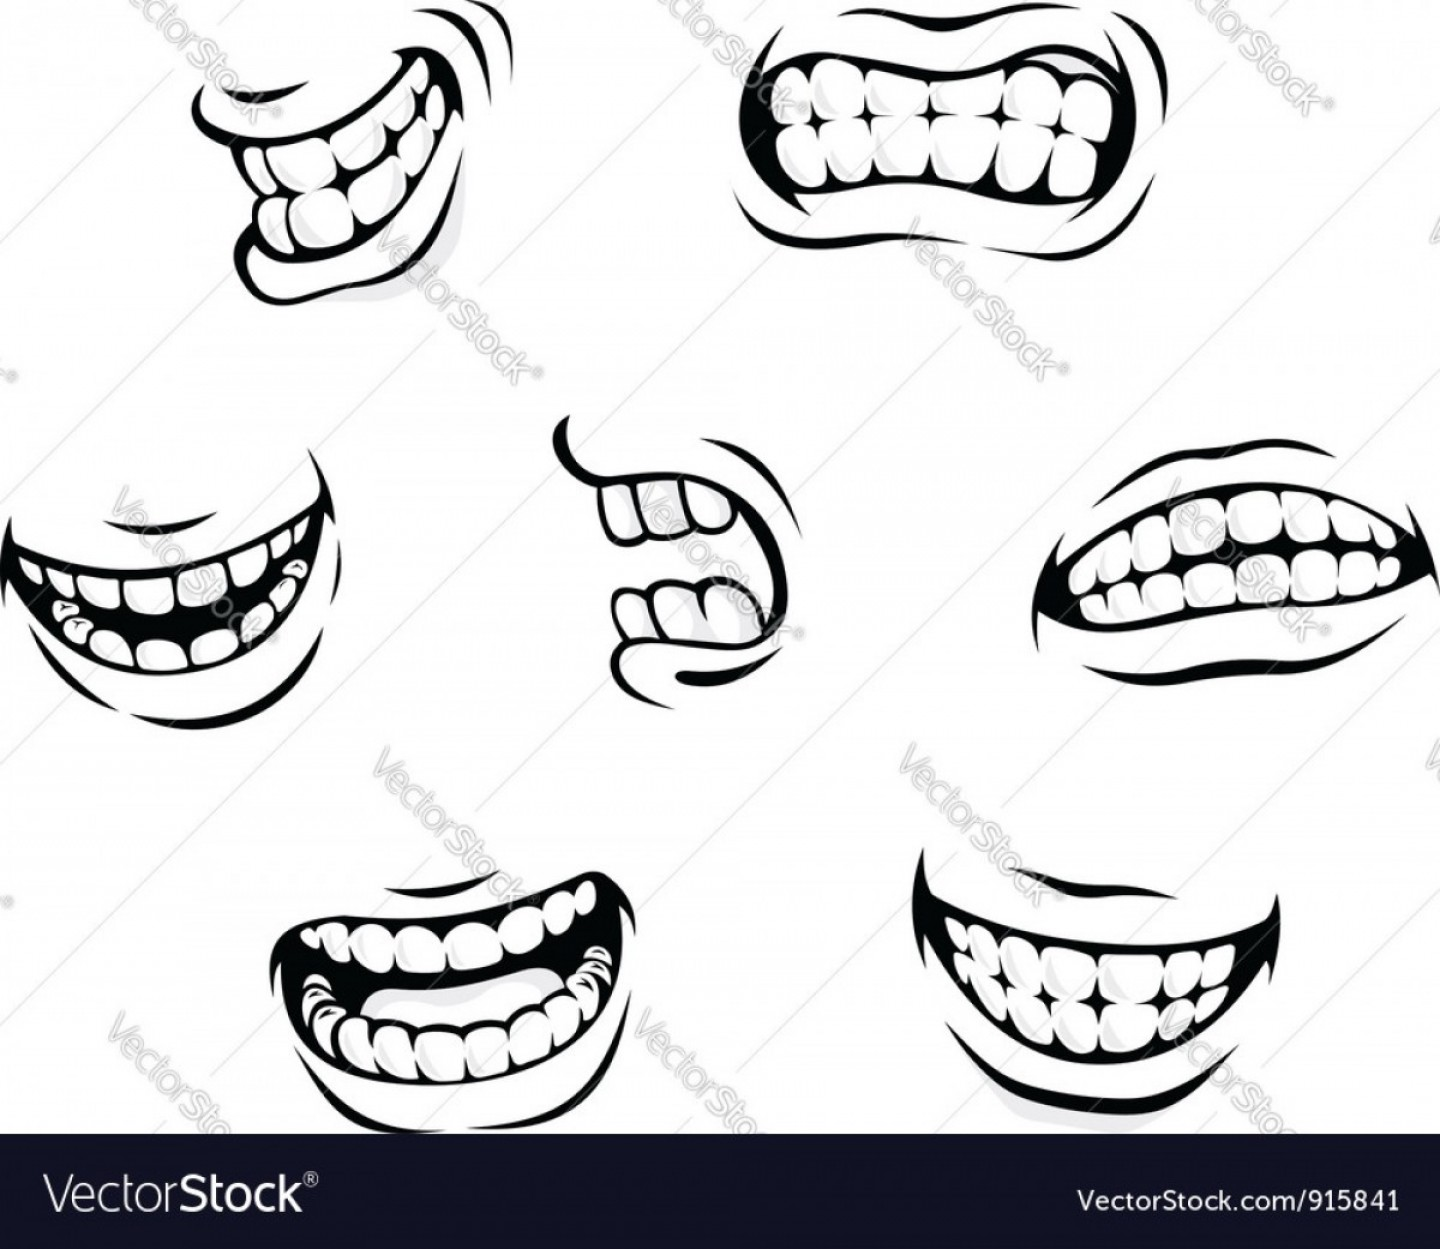 Smile Vector Art: Smiling And Angry Cartoon Teeth Vector